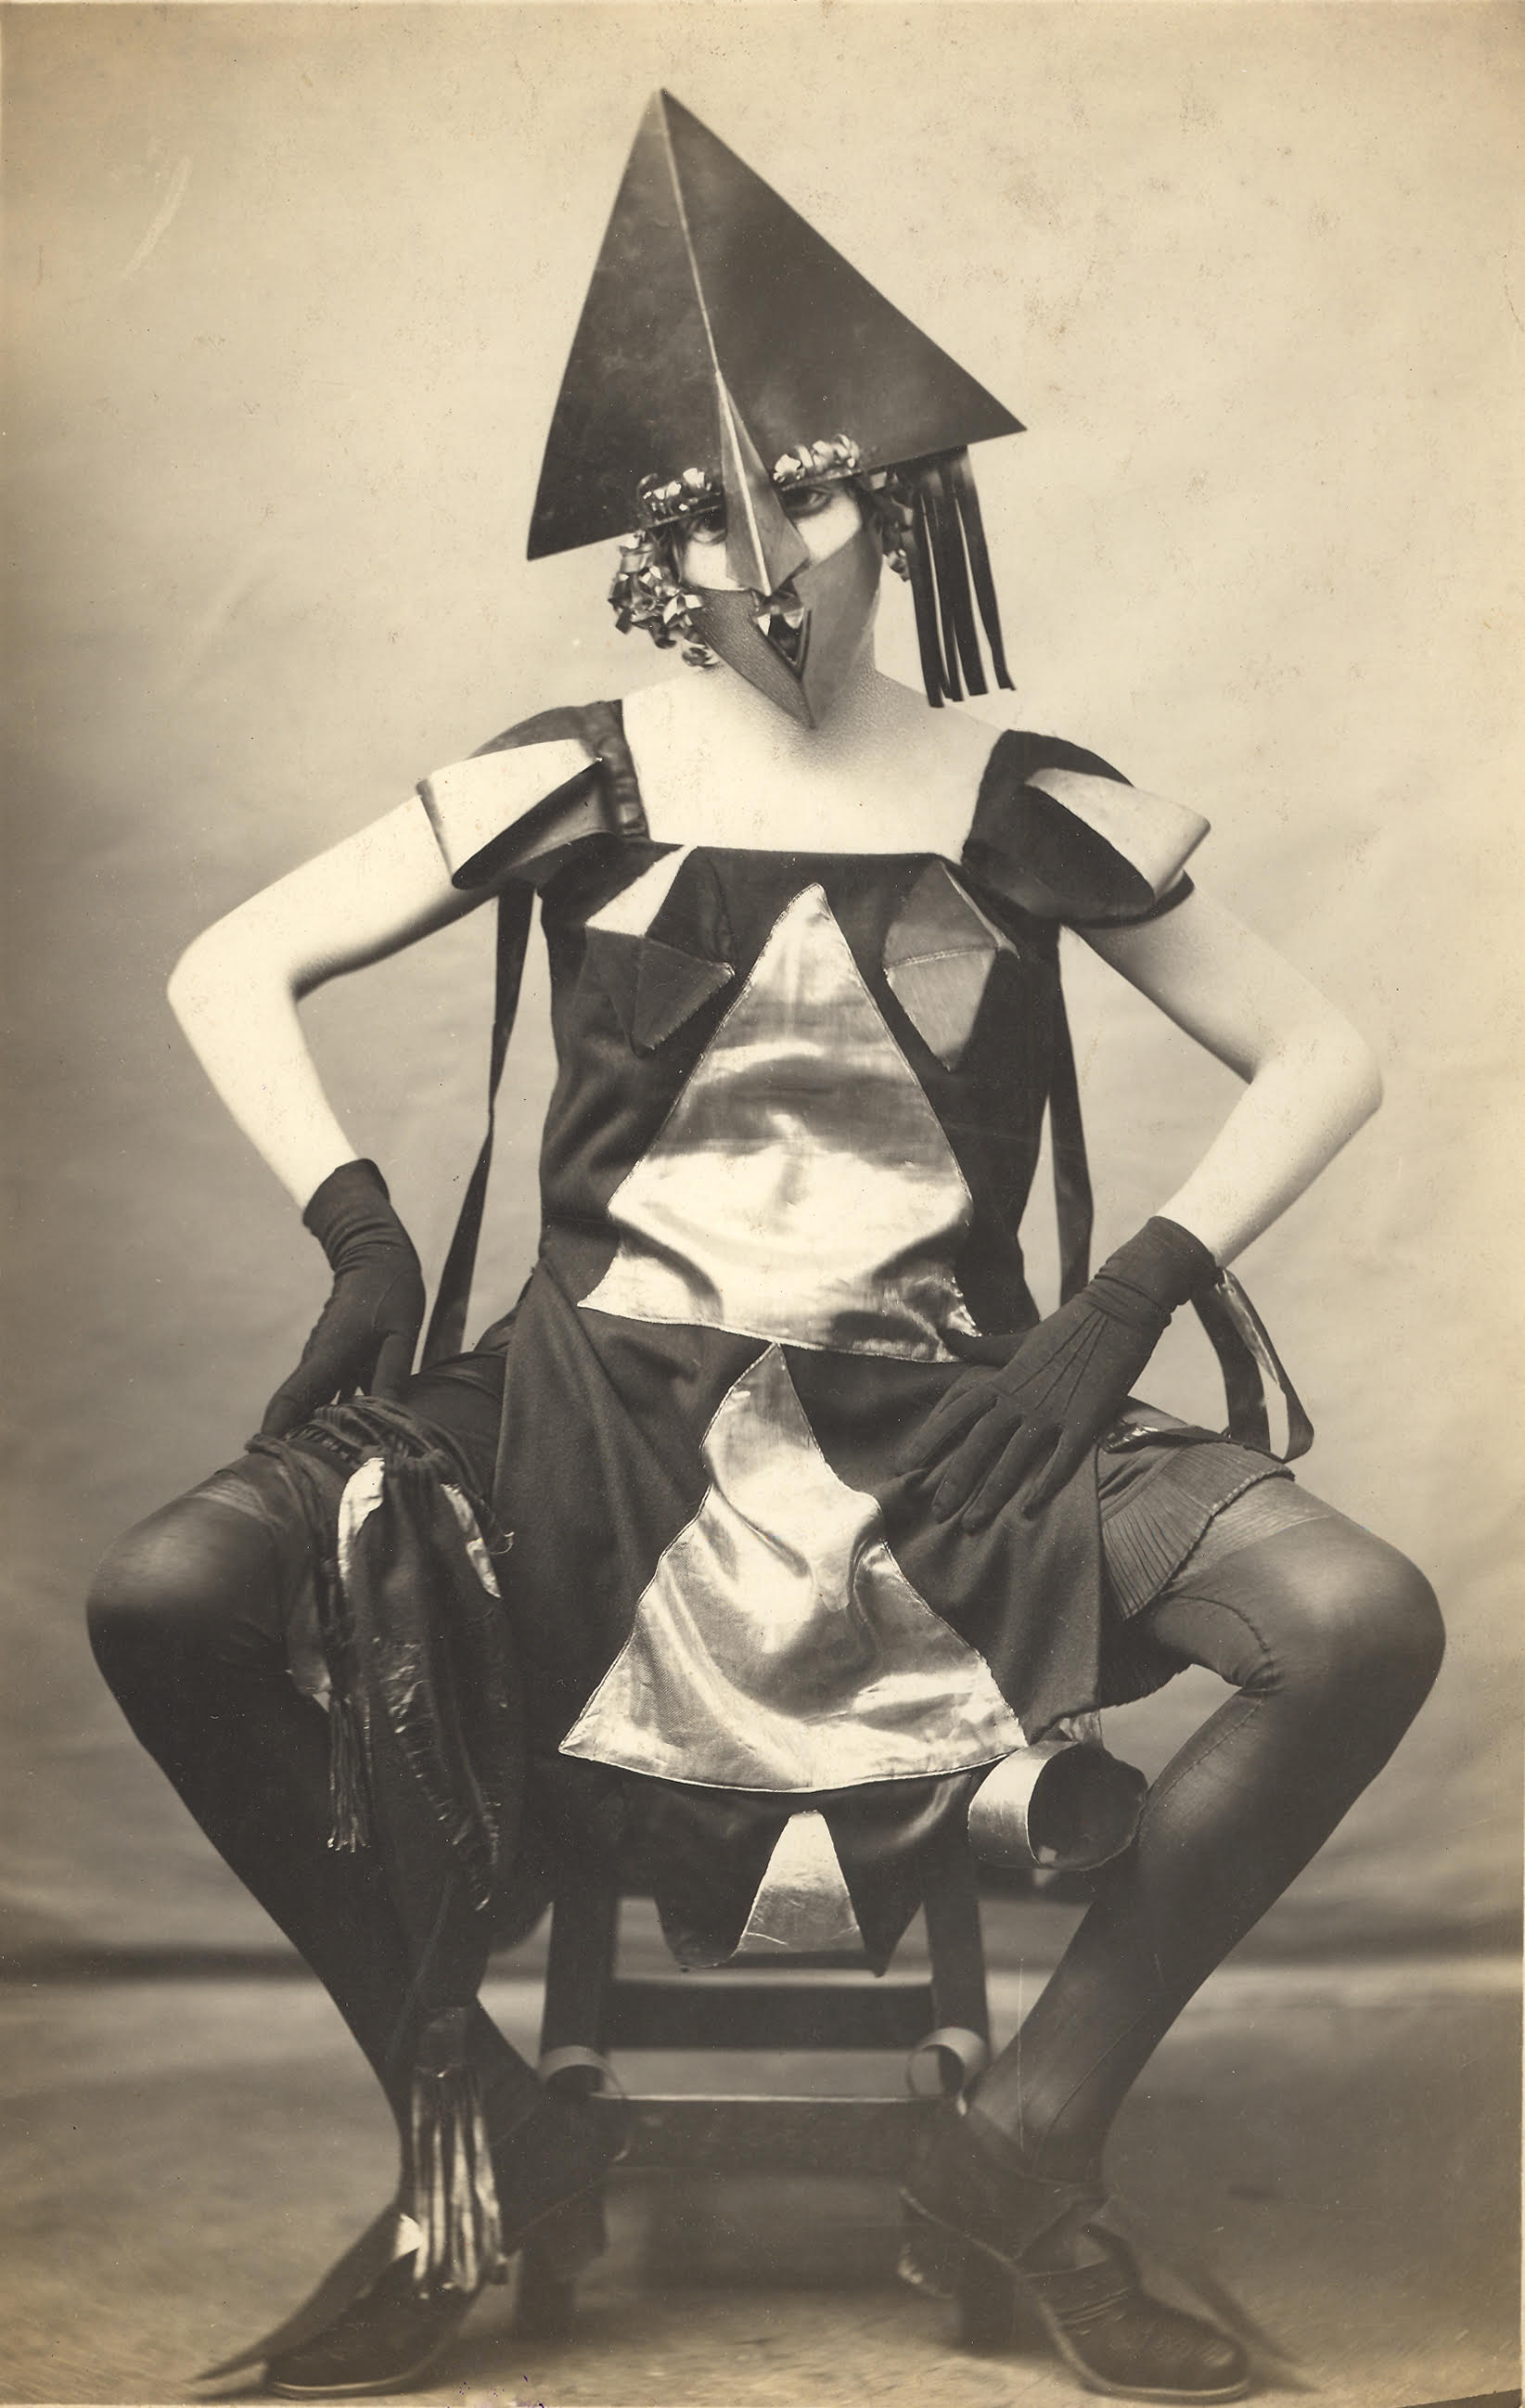 """A day with Marie Vassilieff"", Pierre Delbo (photographe), ""Costume Arlequine de Marie Vassilieff pour le Bal Banal"", 1924, Collection Claude Bernès. Droits réservés."